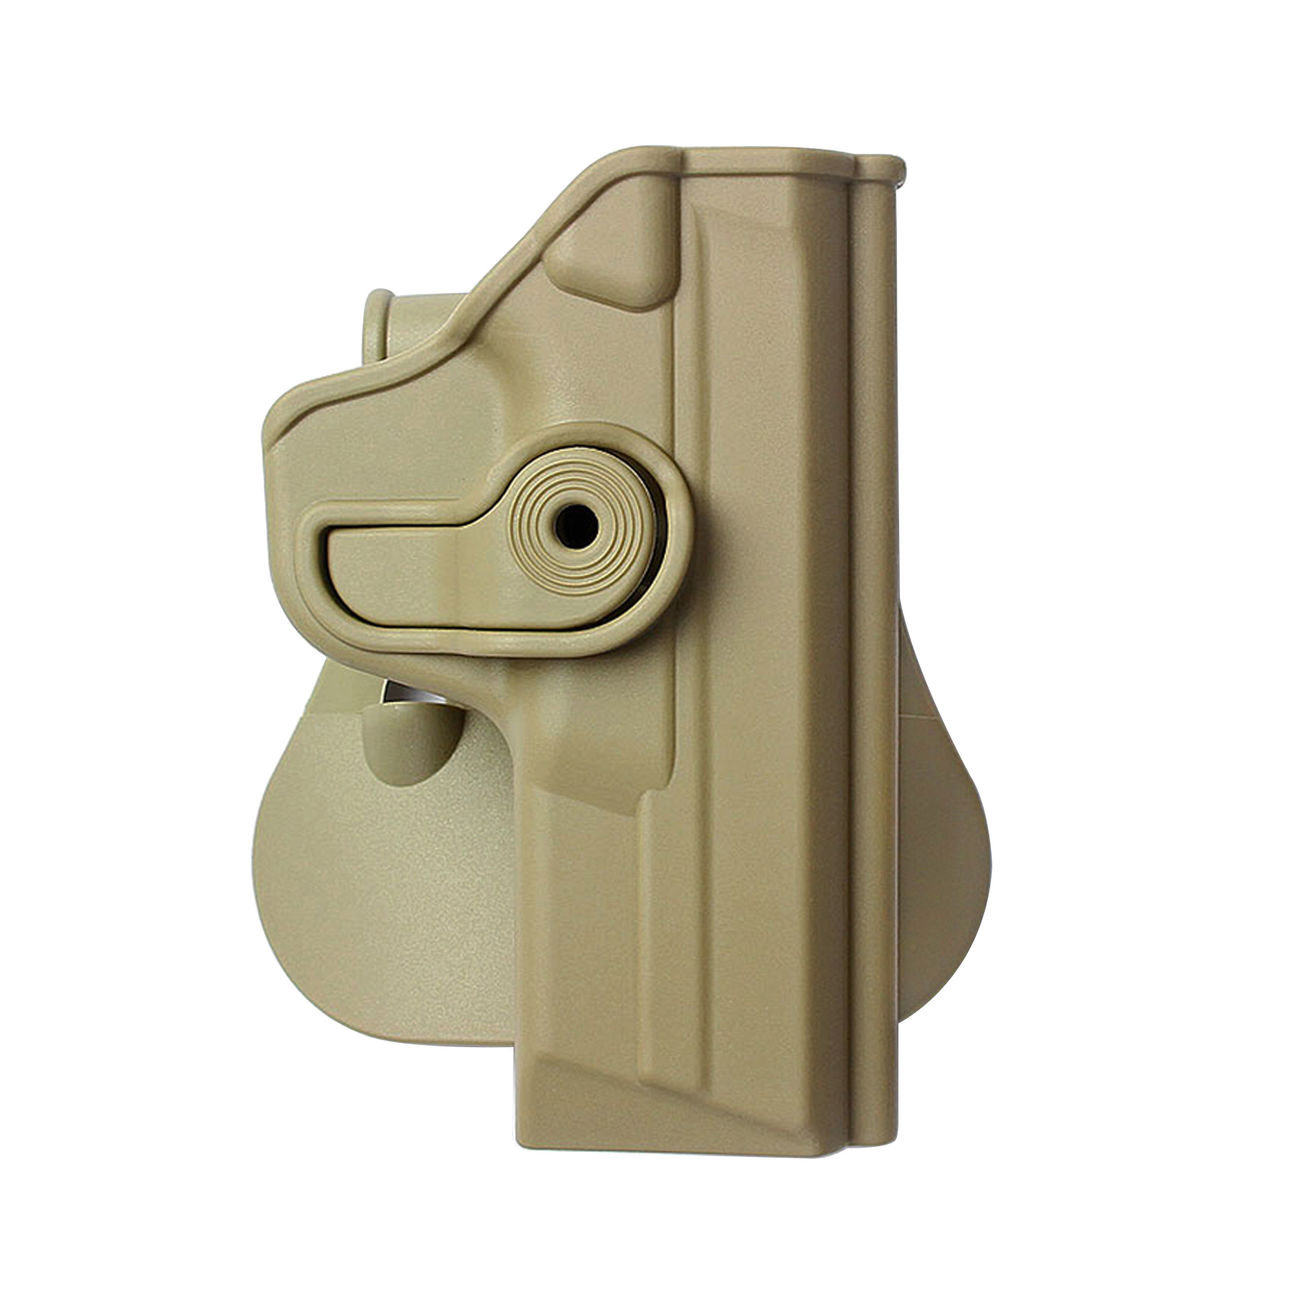 IMI Defense Level 2 Holster Kunststoff Paddle für S&W M&P FS/Compact tan 1